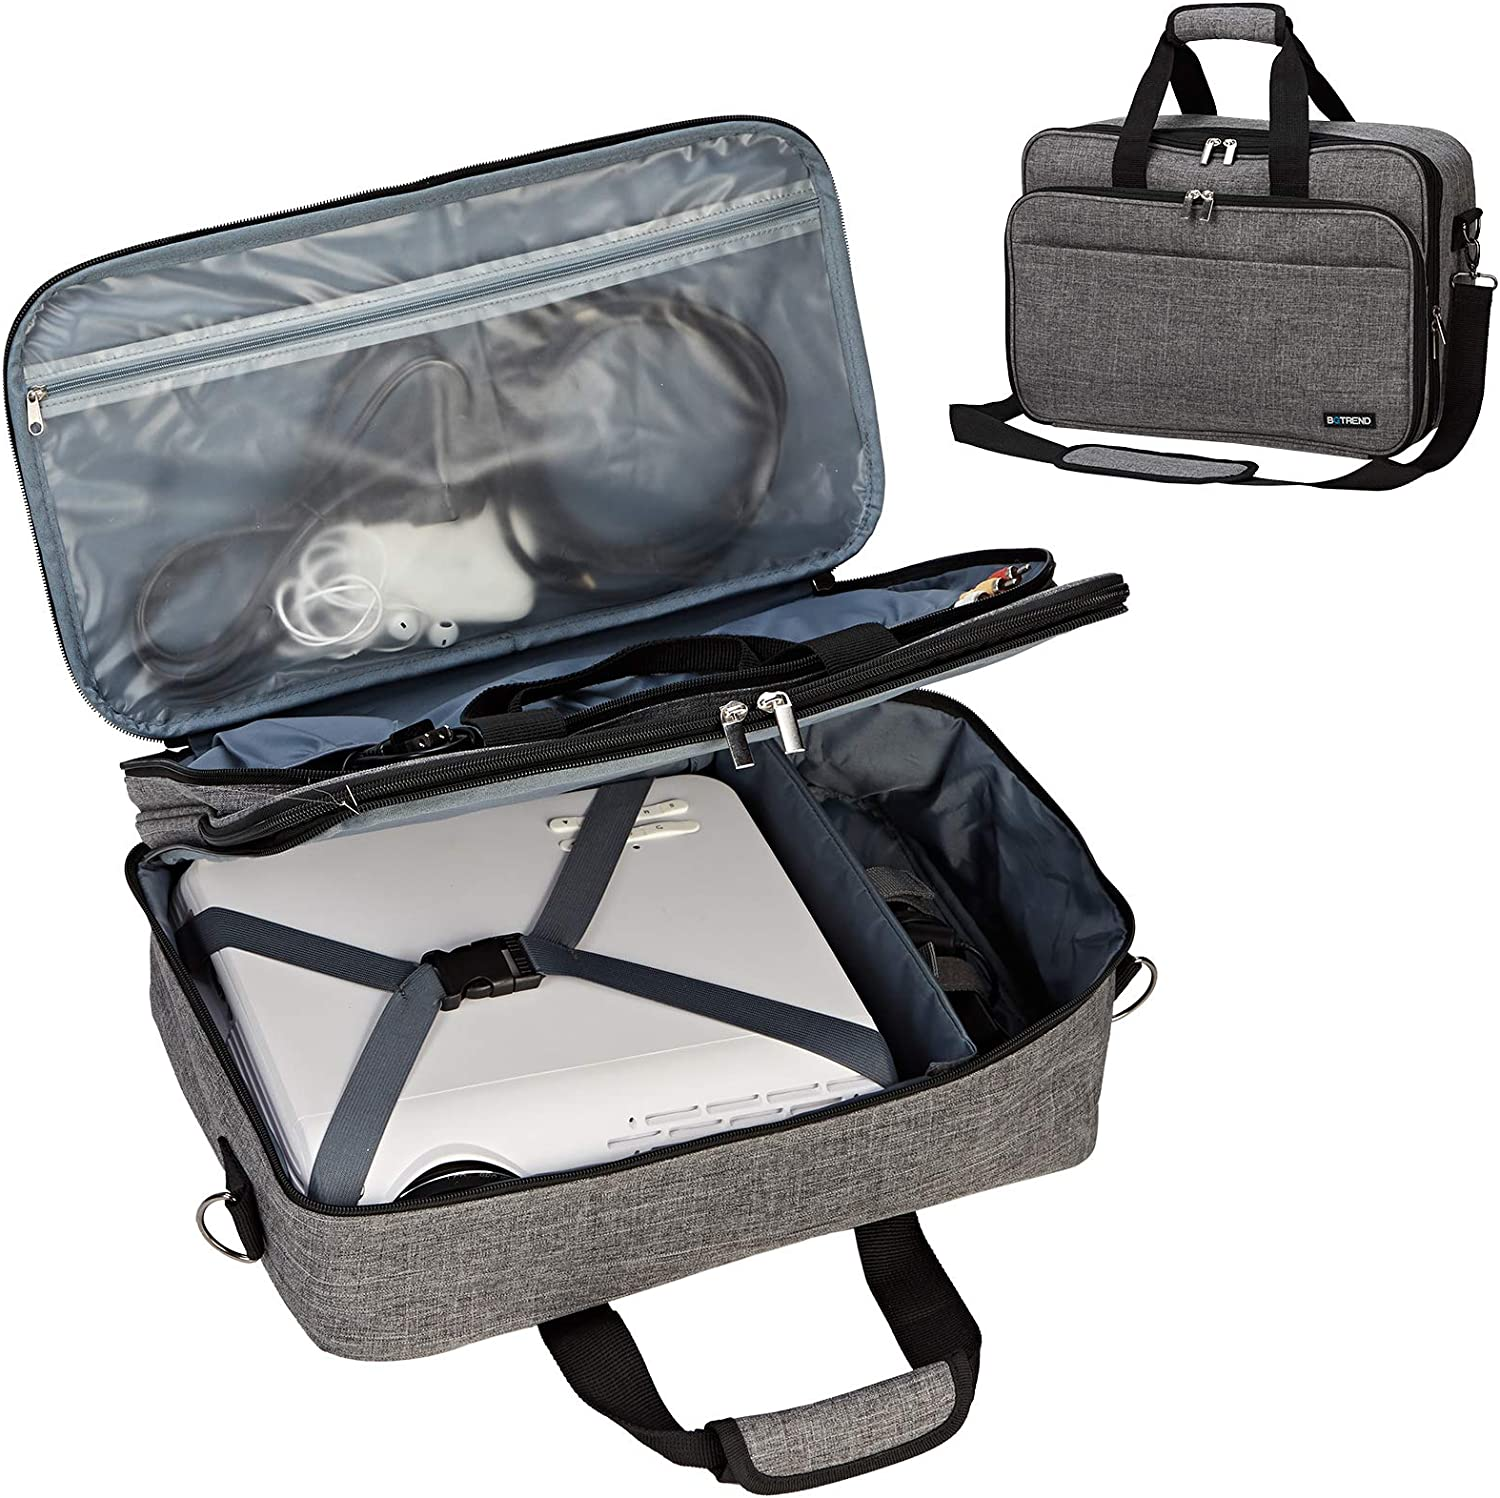 BGTREND Projector Case, Projector Bag Compatible with Most Major Projectors with Accessories Storage Pockets, Grey (Bag Only)